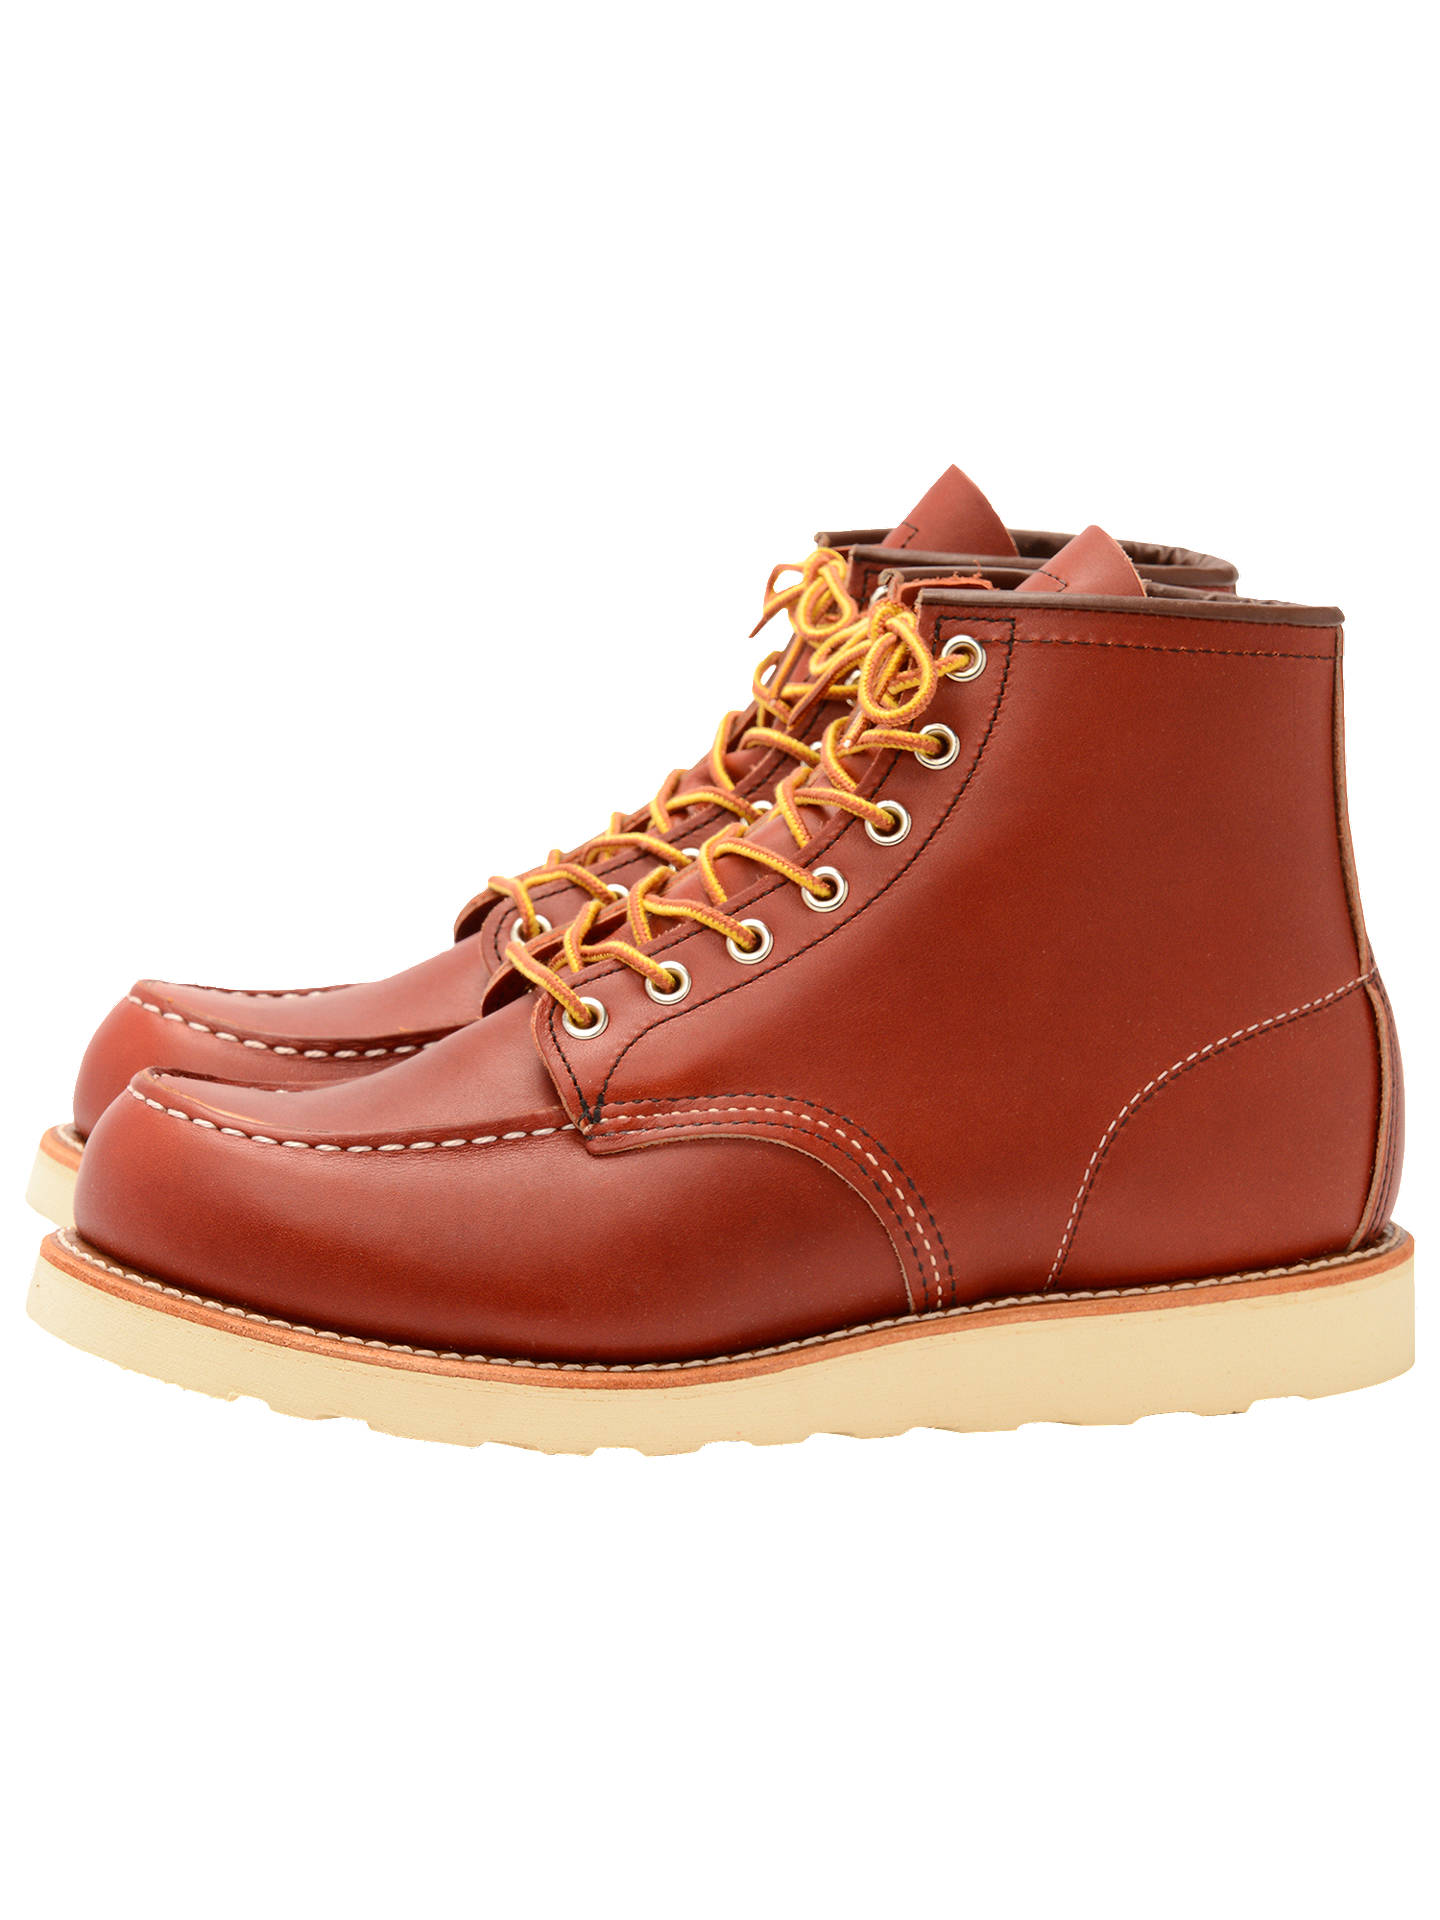 3b0fc1b8853 Red Wing 8131 Moc Oro-russet Portage Toe Boot, Red